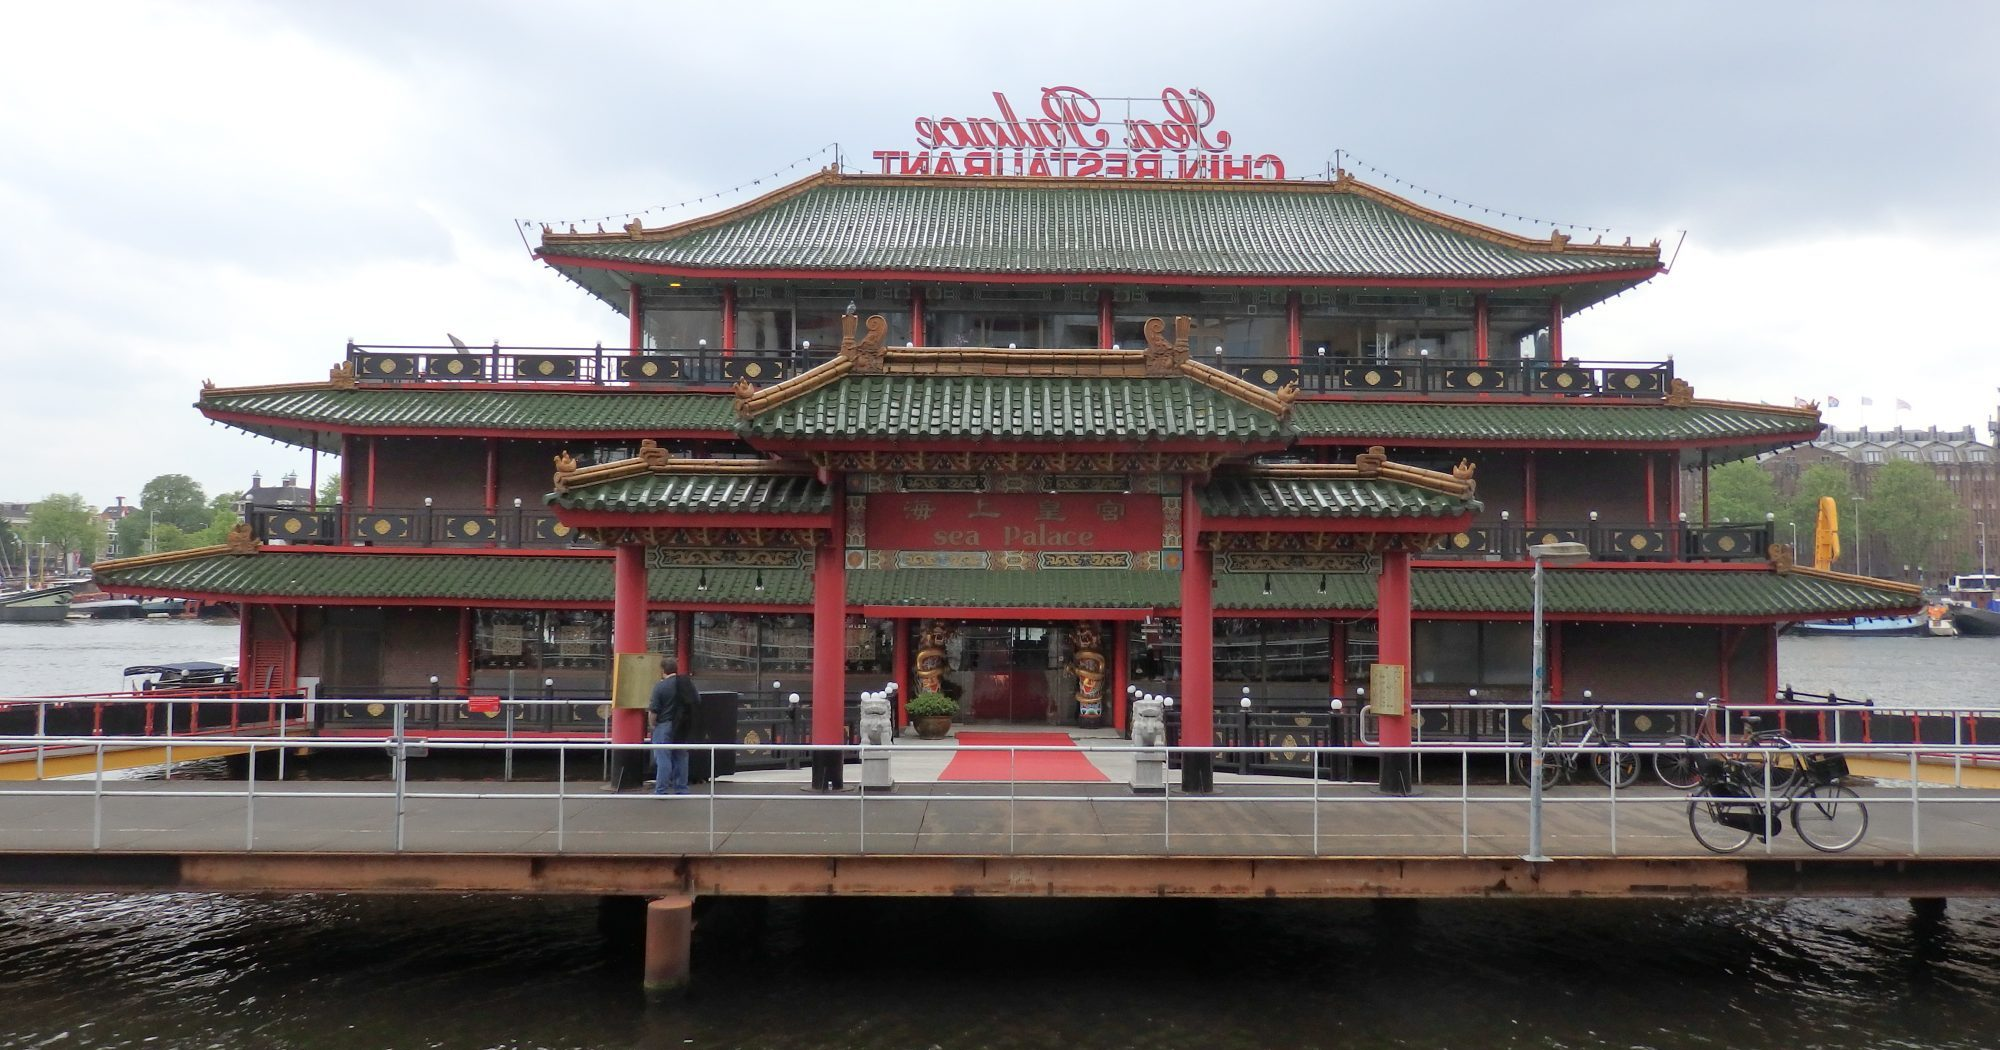 The Sea Palace Chinese restaurant